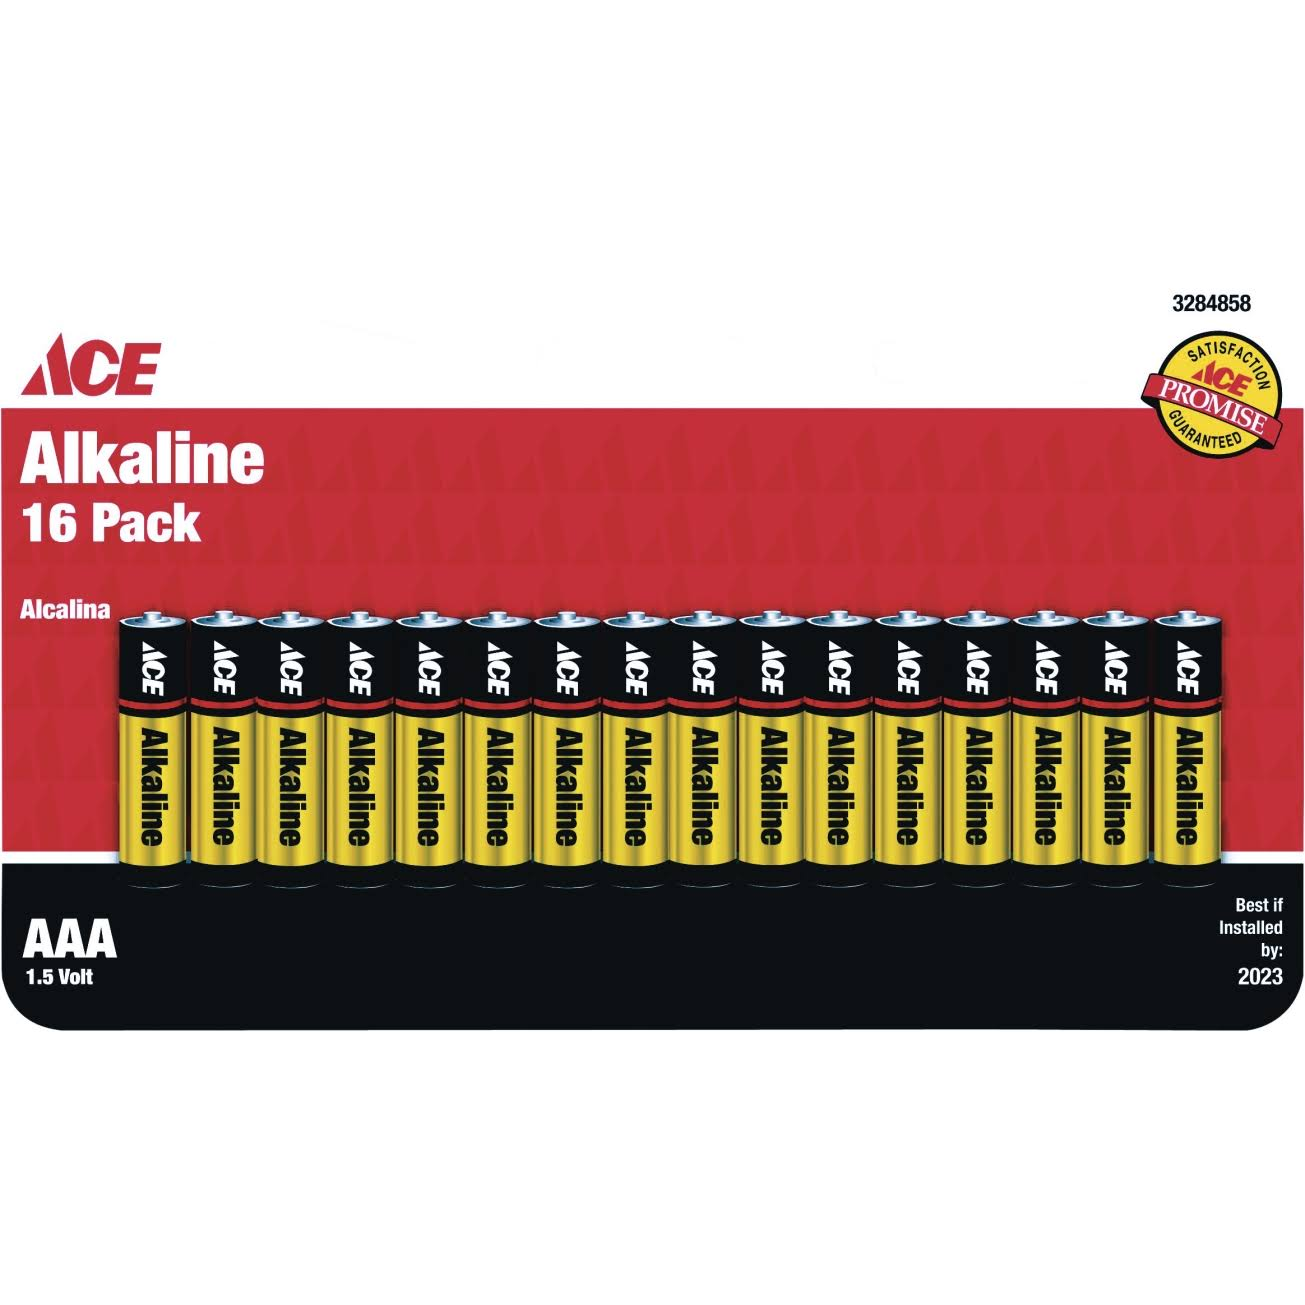 Ace AAA Alkaline Batteries - 16pk